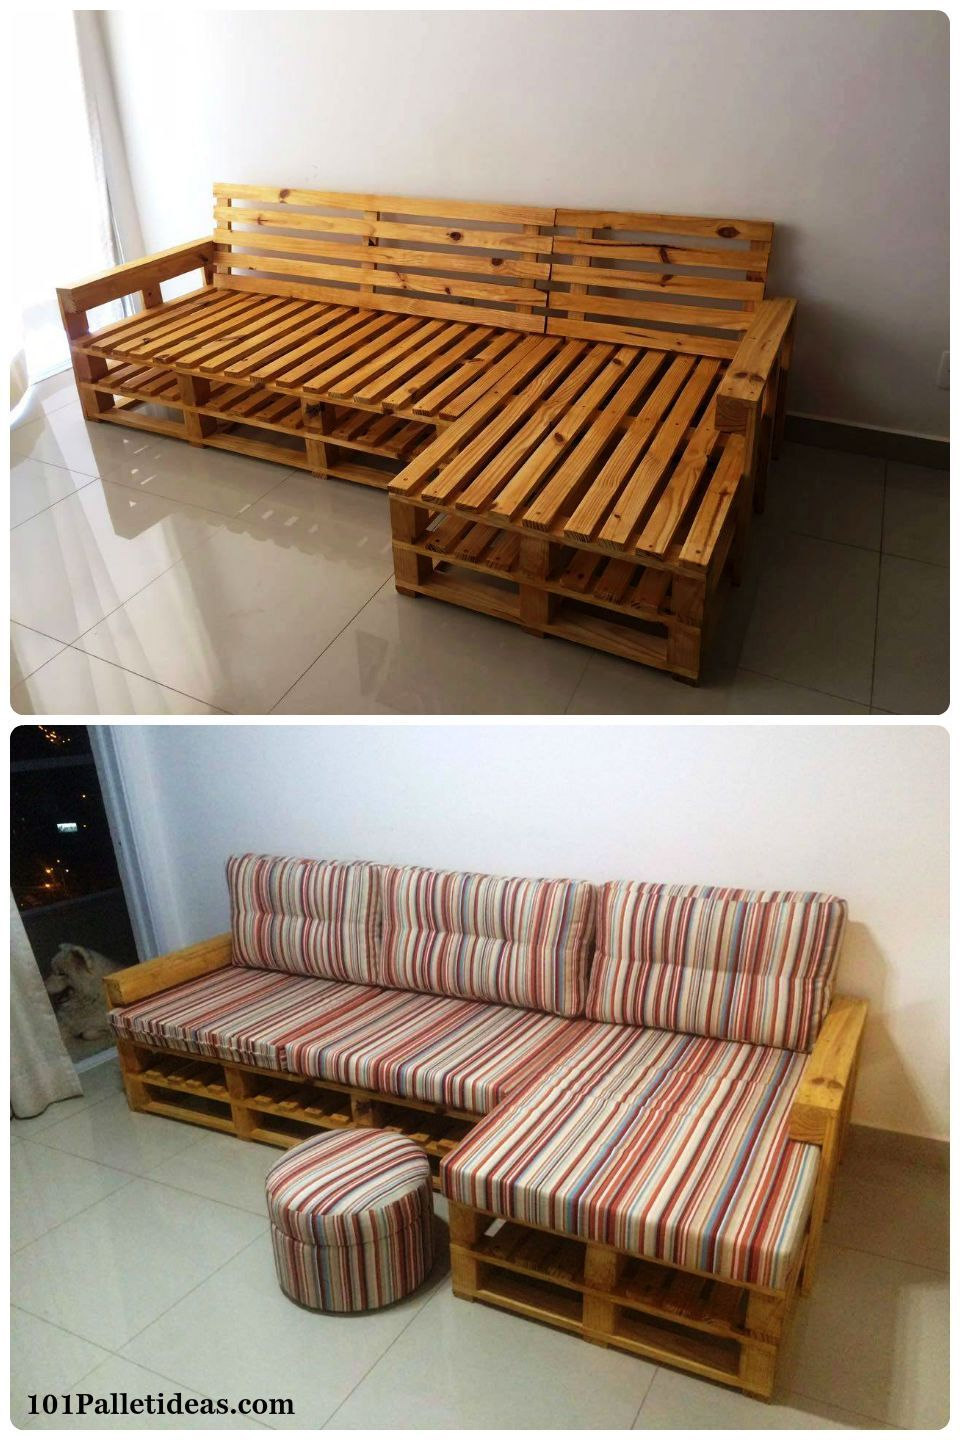 Coussin Canapé Palette Stupéfiant 20 Pallet Ideas You Can Diy for Your Home